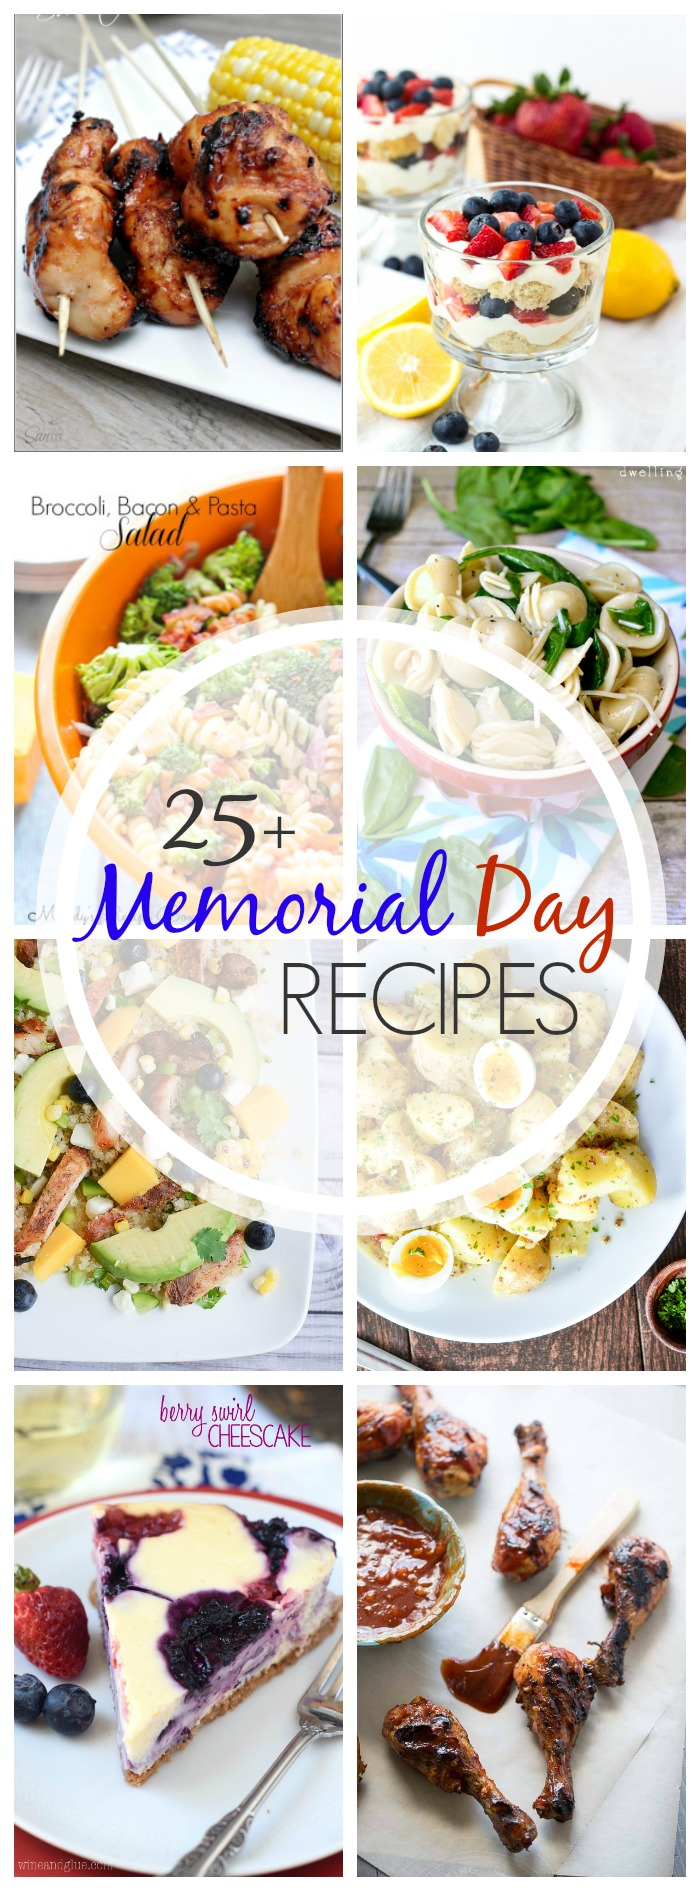 25 + Memorial Day Recipes that are perfect for your holiday weekend!